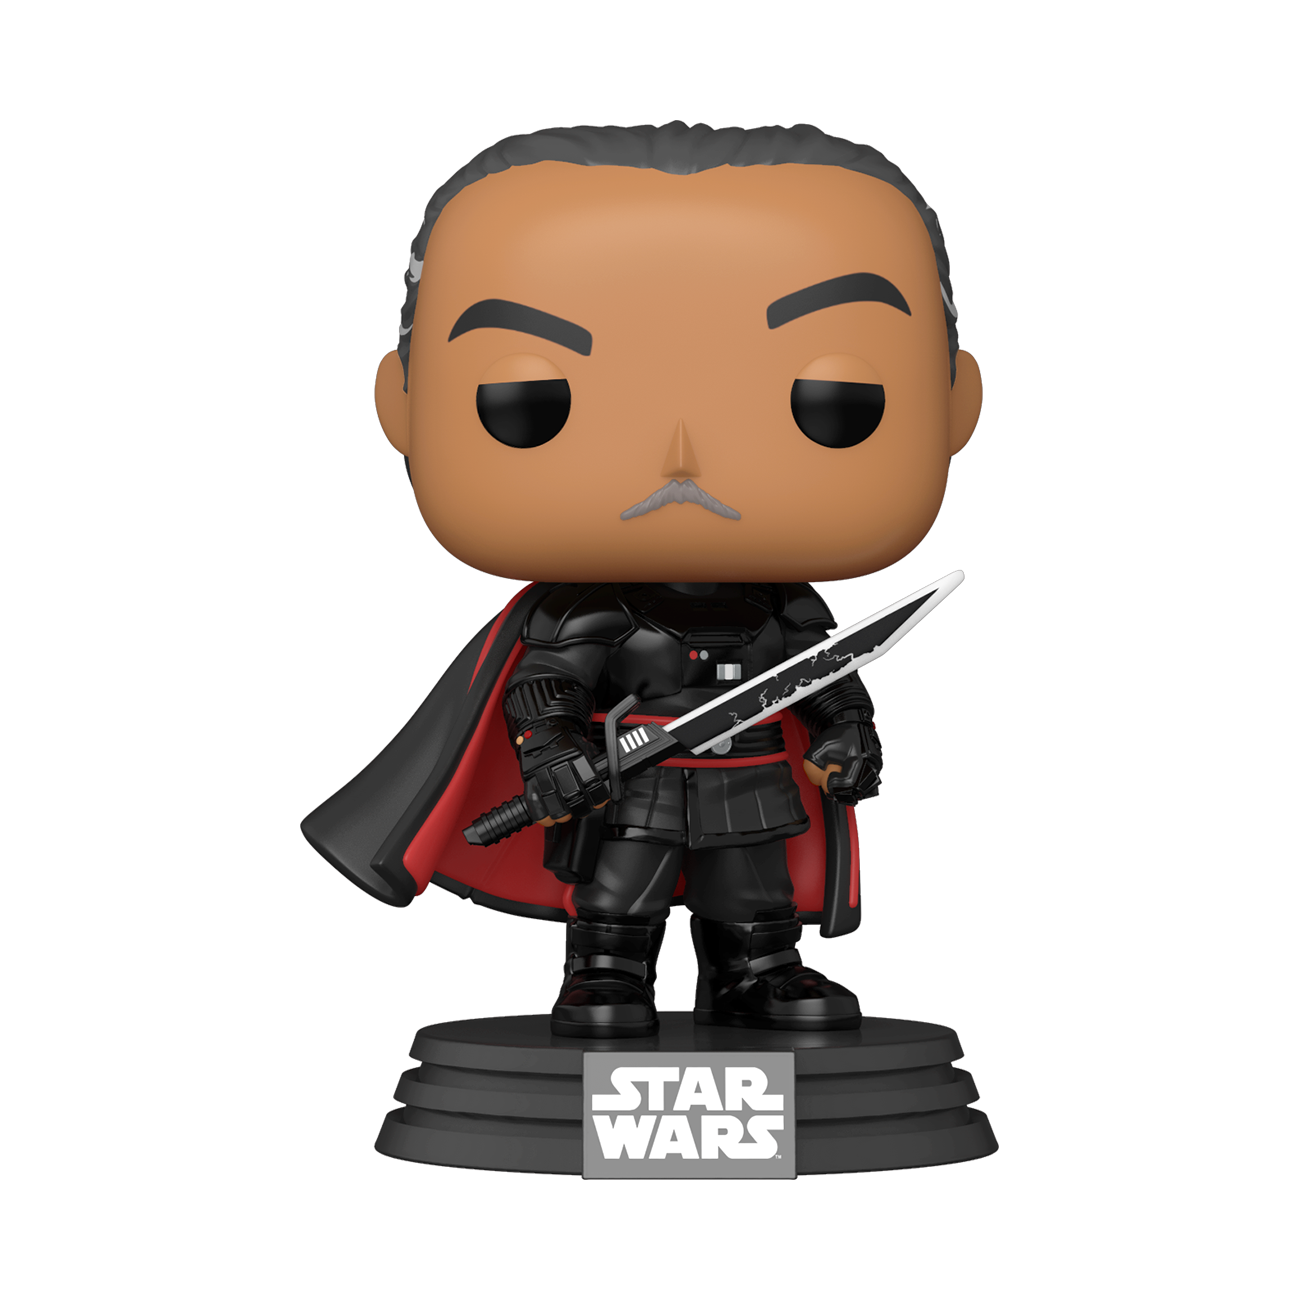 Moff Gideon Pop! Bobbleheads by Funko